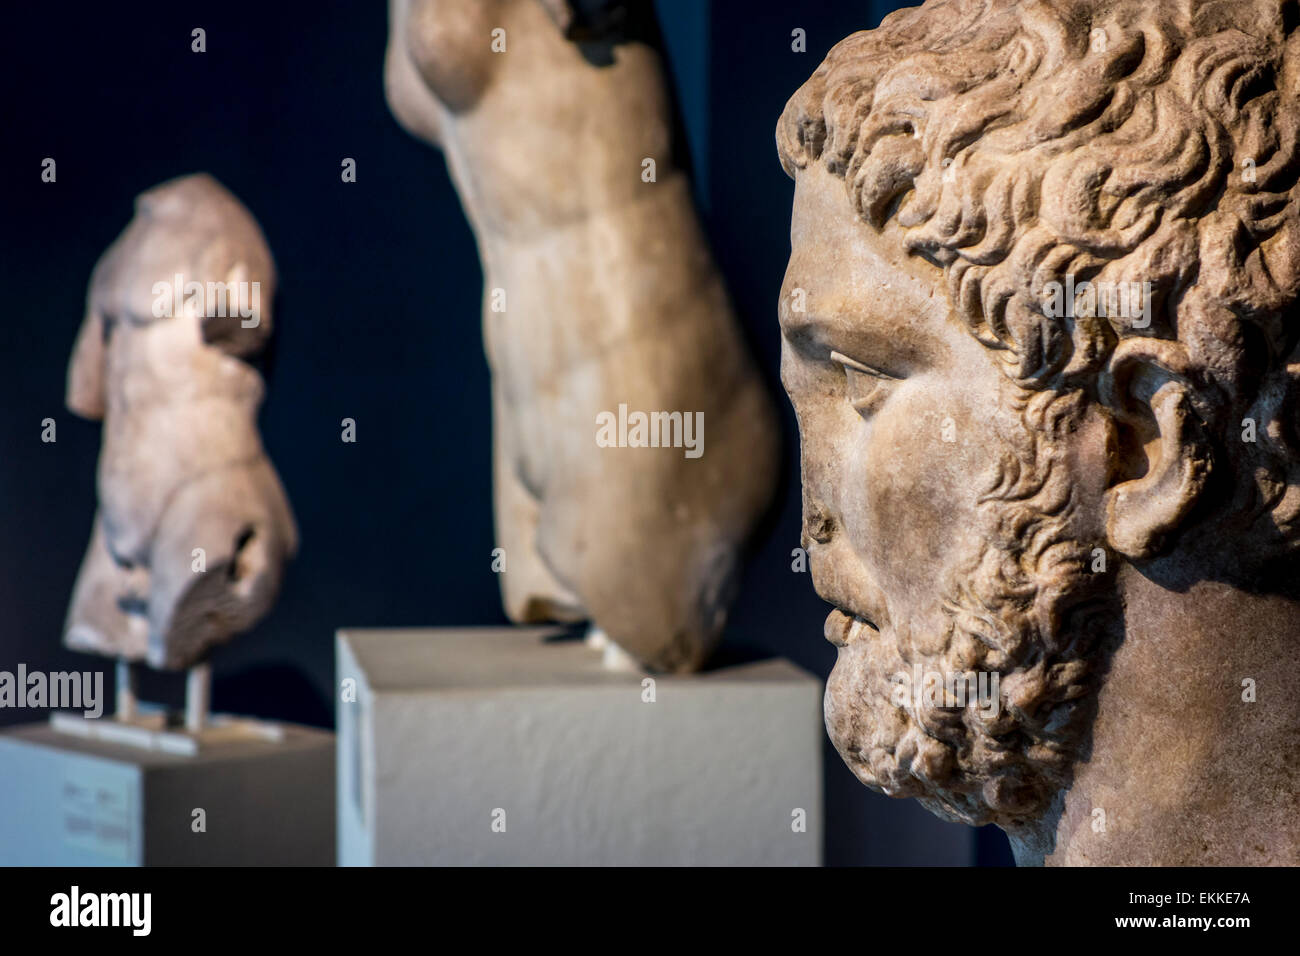 Marble bust of Pythagoras of Samos, Ionian Greek philosopher and mathematician in the Cinquantenaire Museum in Brussels, - Stock Image